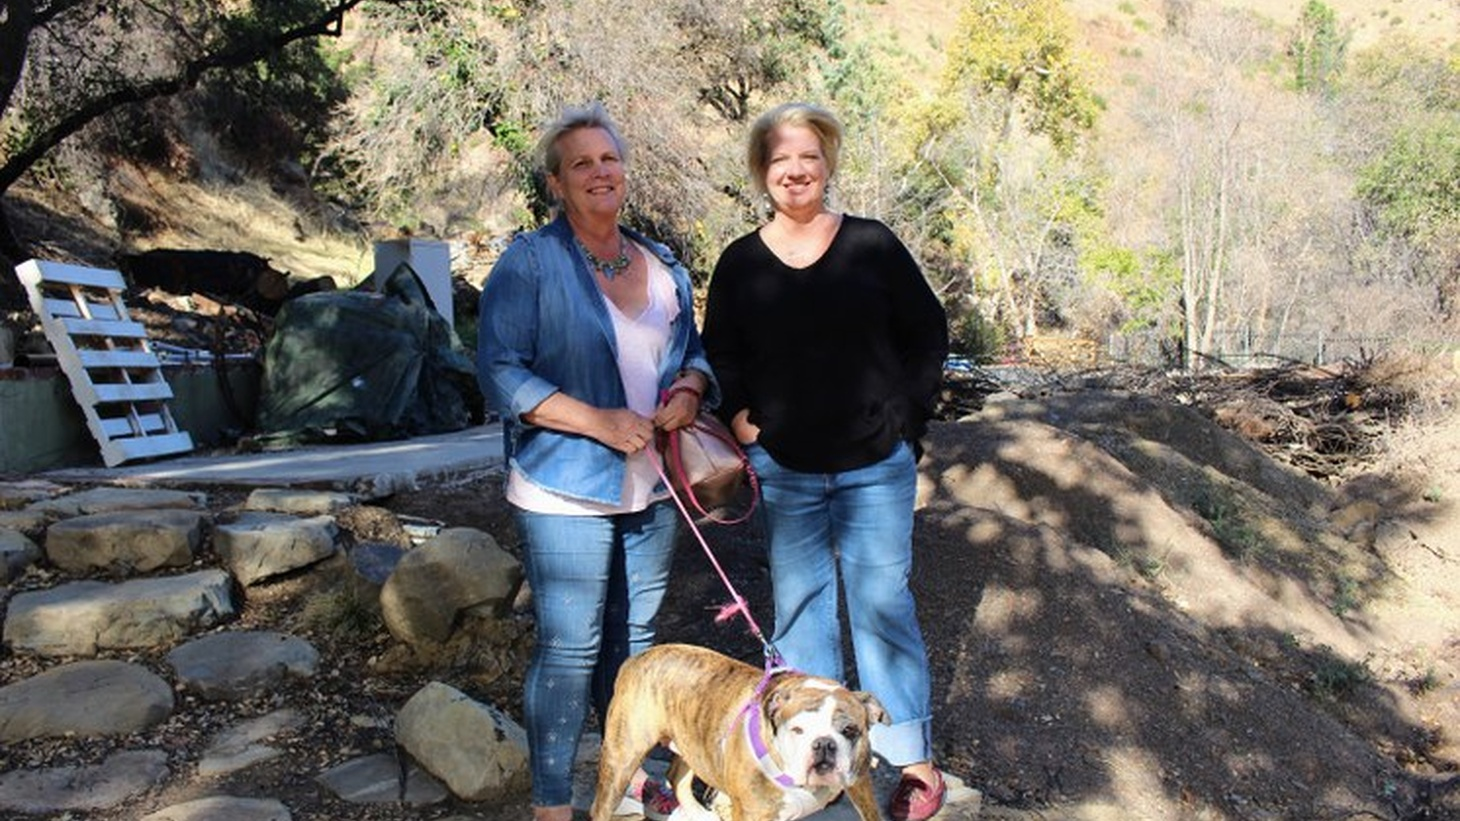 Monique Quigley (L) and Dawn Ceniceros (R) on Ceniceros' property in Ojai